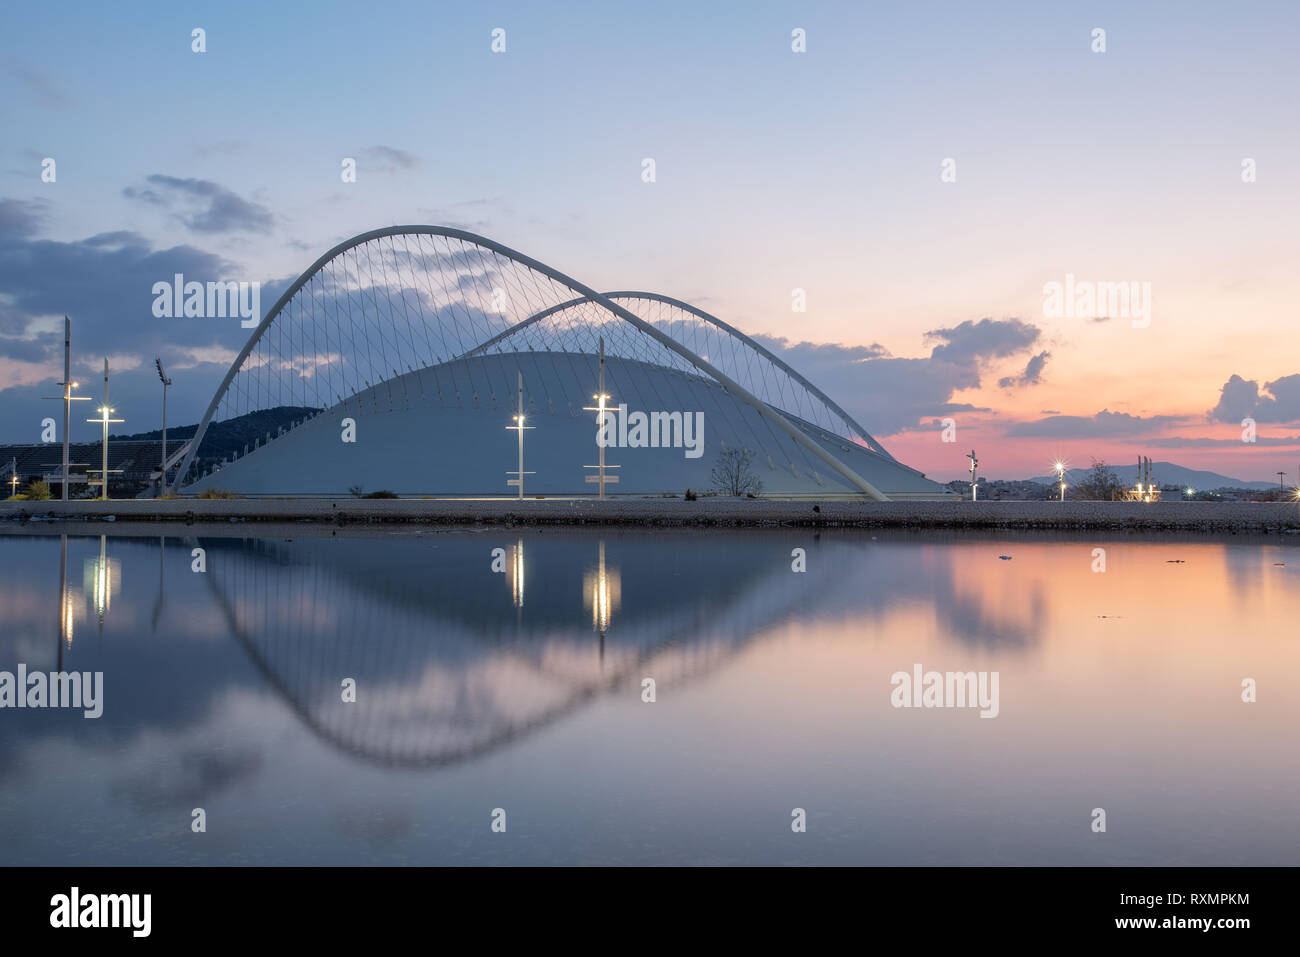 Athens, Greece - November 11, 2018: Architecture in Olympic Sports Complex OACA in Athens, Greece. - Stock Image